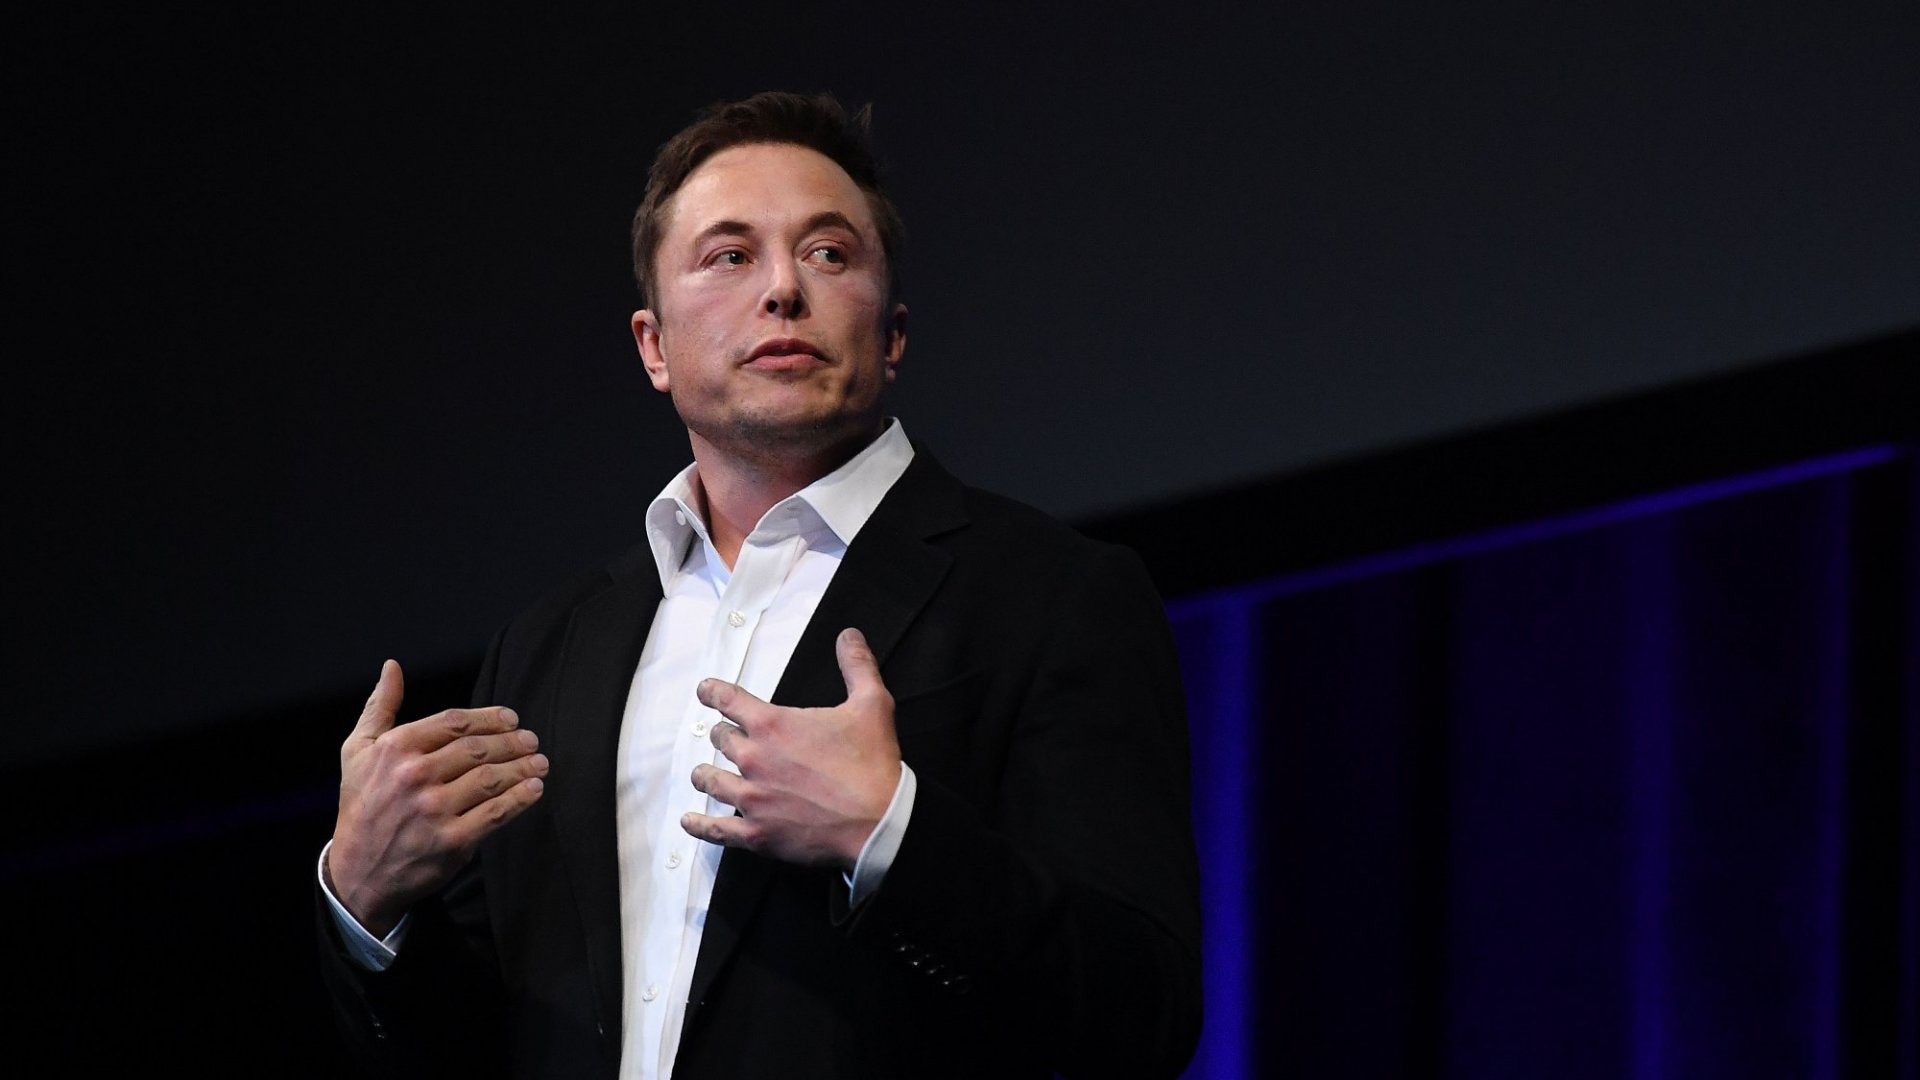 Elon Musk Wants to Implant Chips in People's Brains and Has Already Tested on Monkeys With Some Success